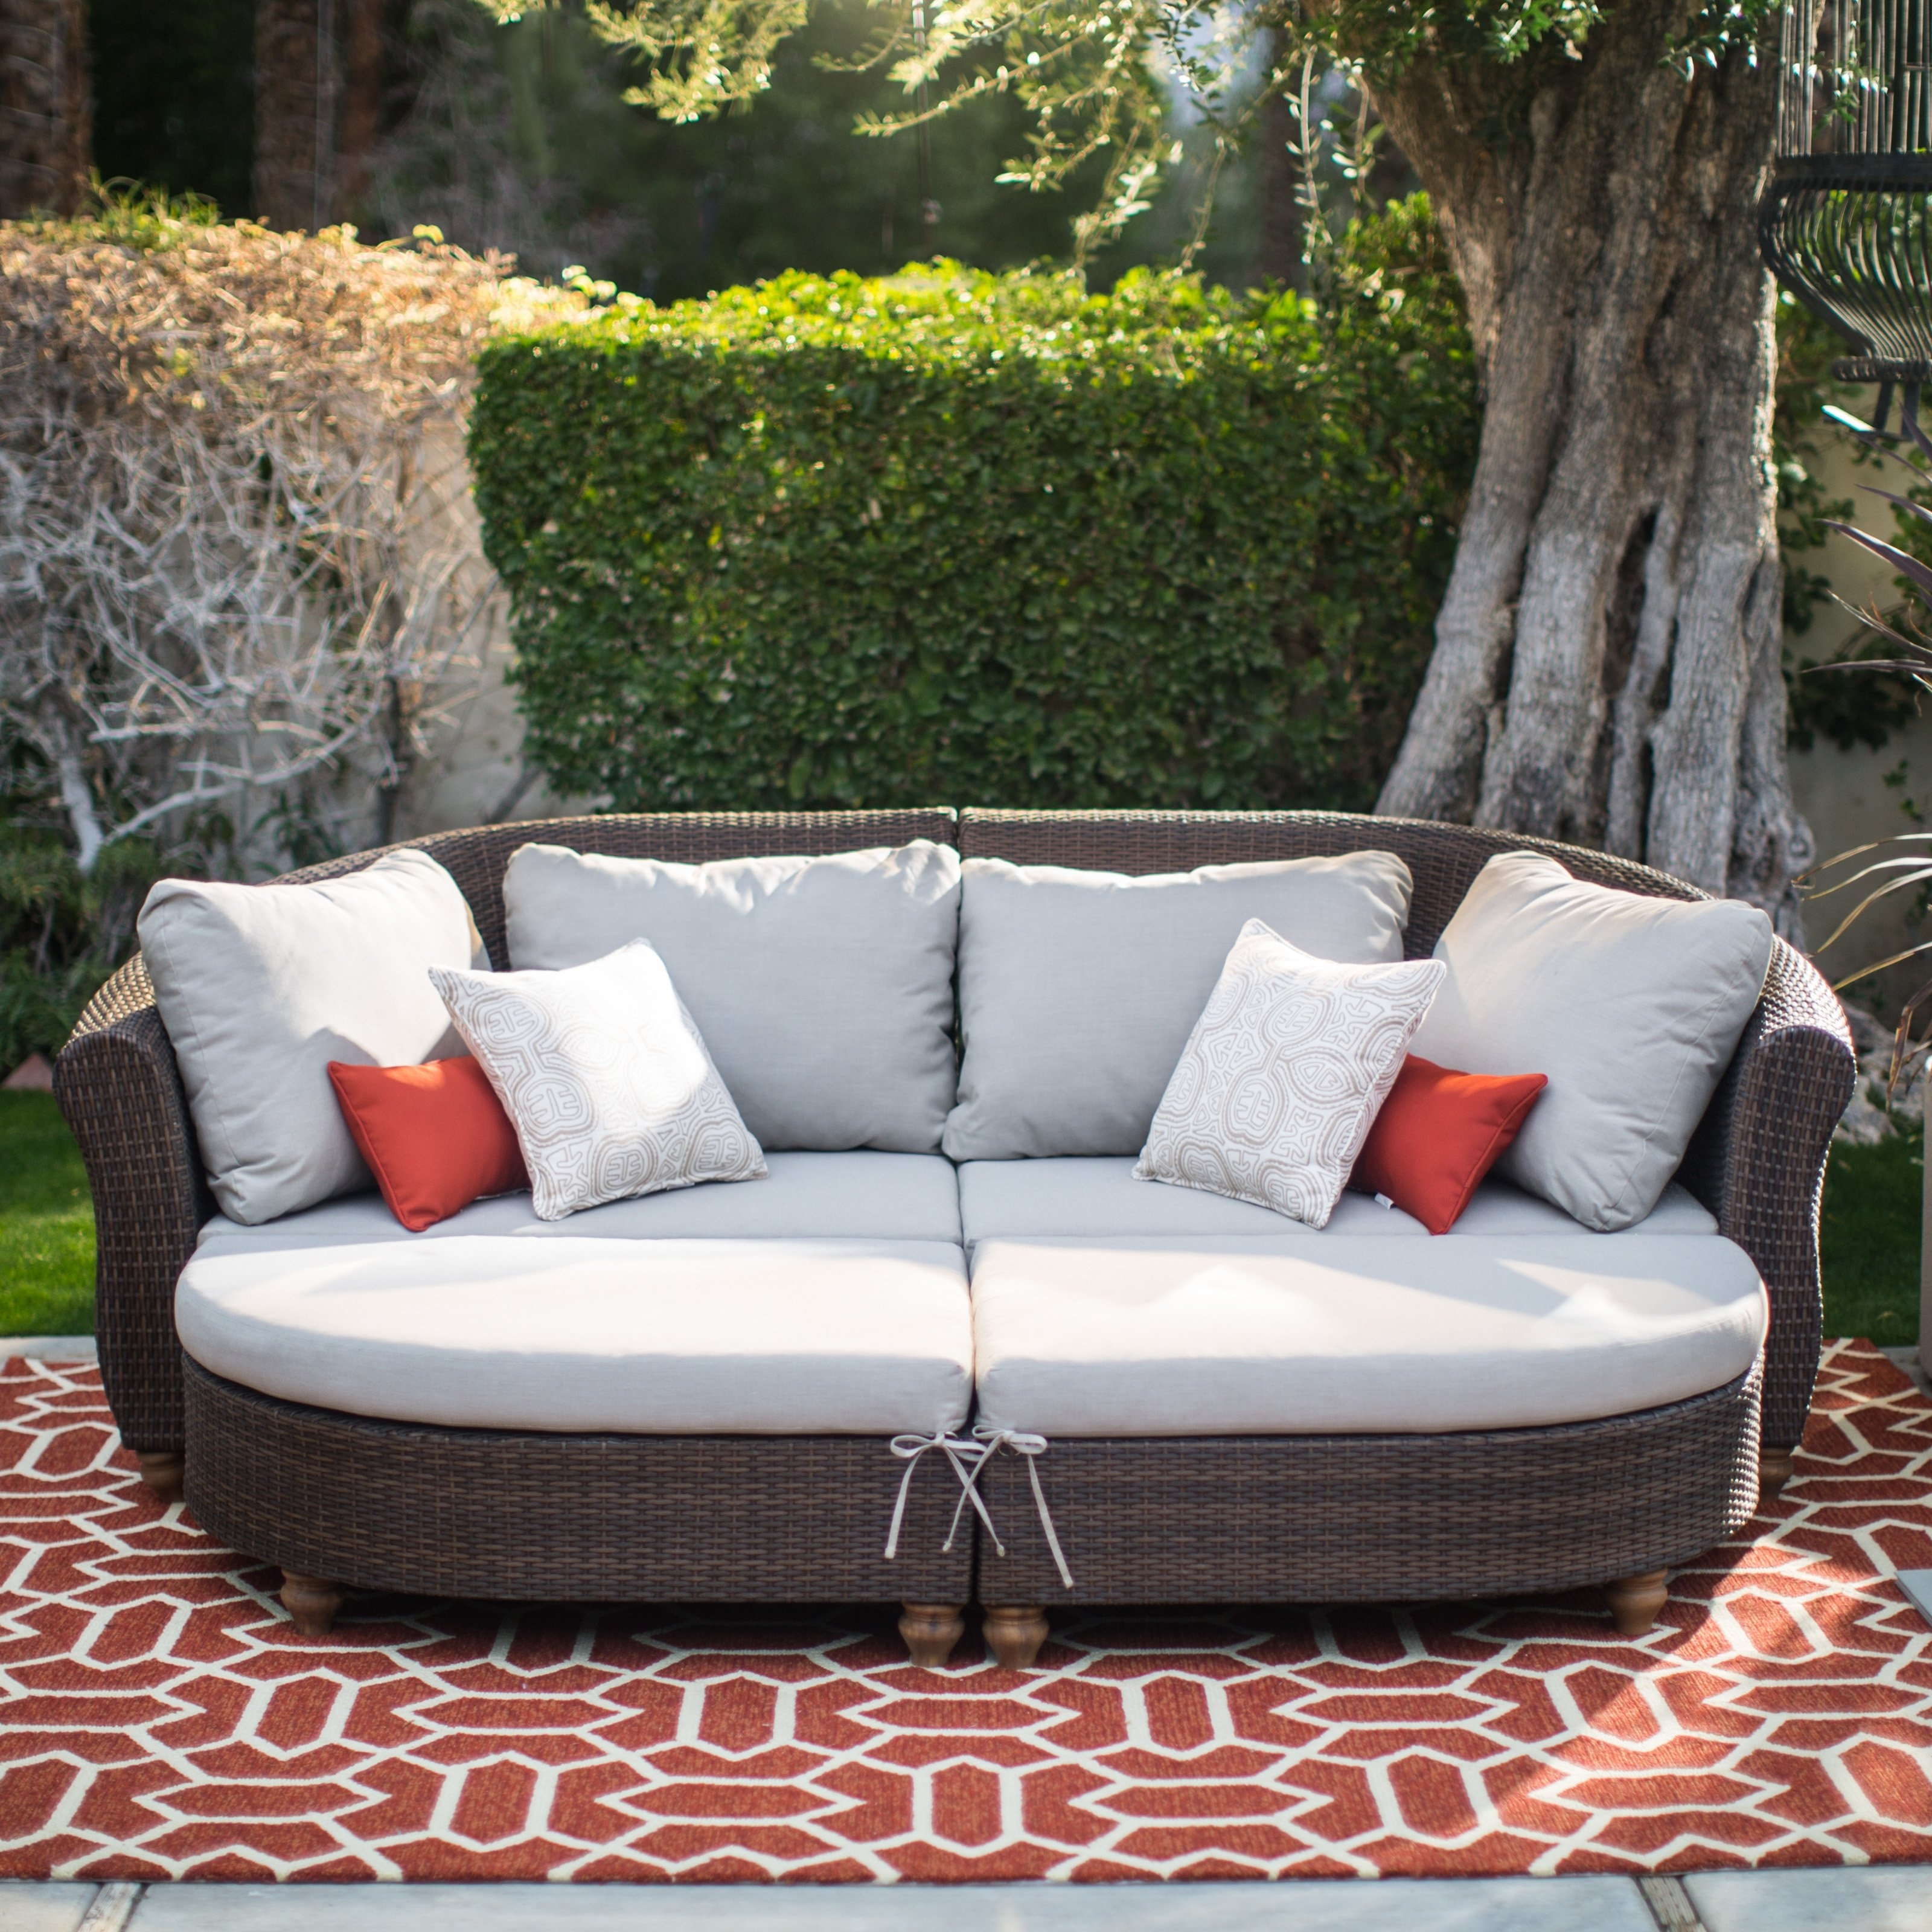 Trendy Patio Conversation Sets At Target With Chair : Outdoor Wicker Resin Piece Sectional Sofa Patio Furniture (View 8 of 20)